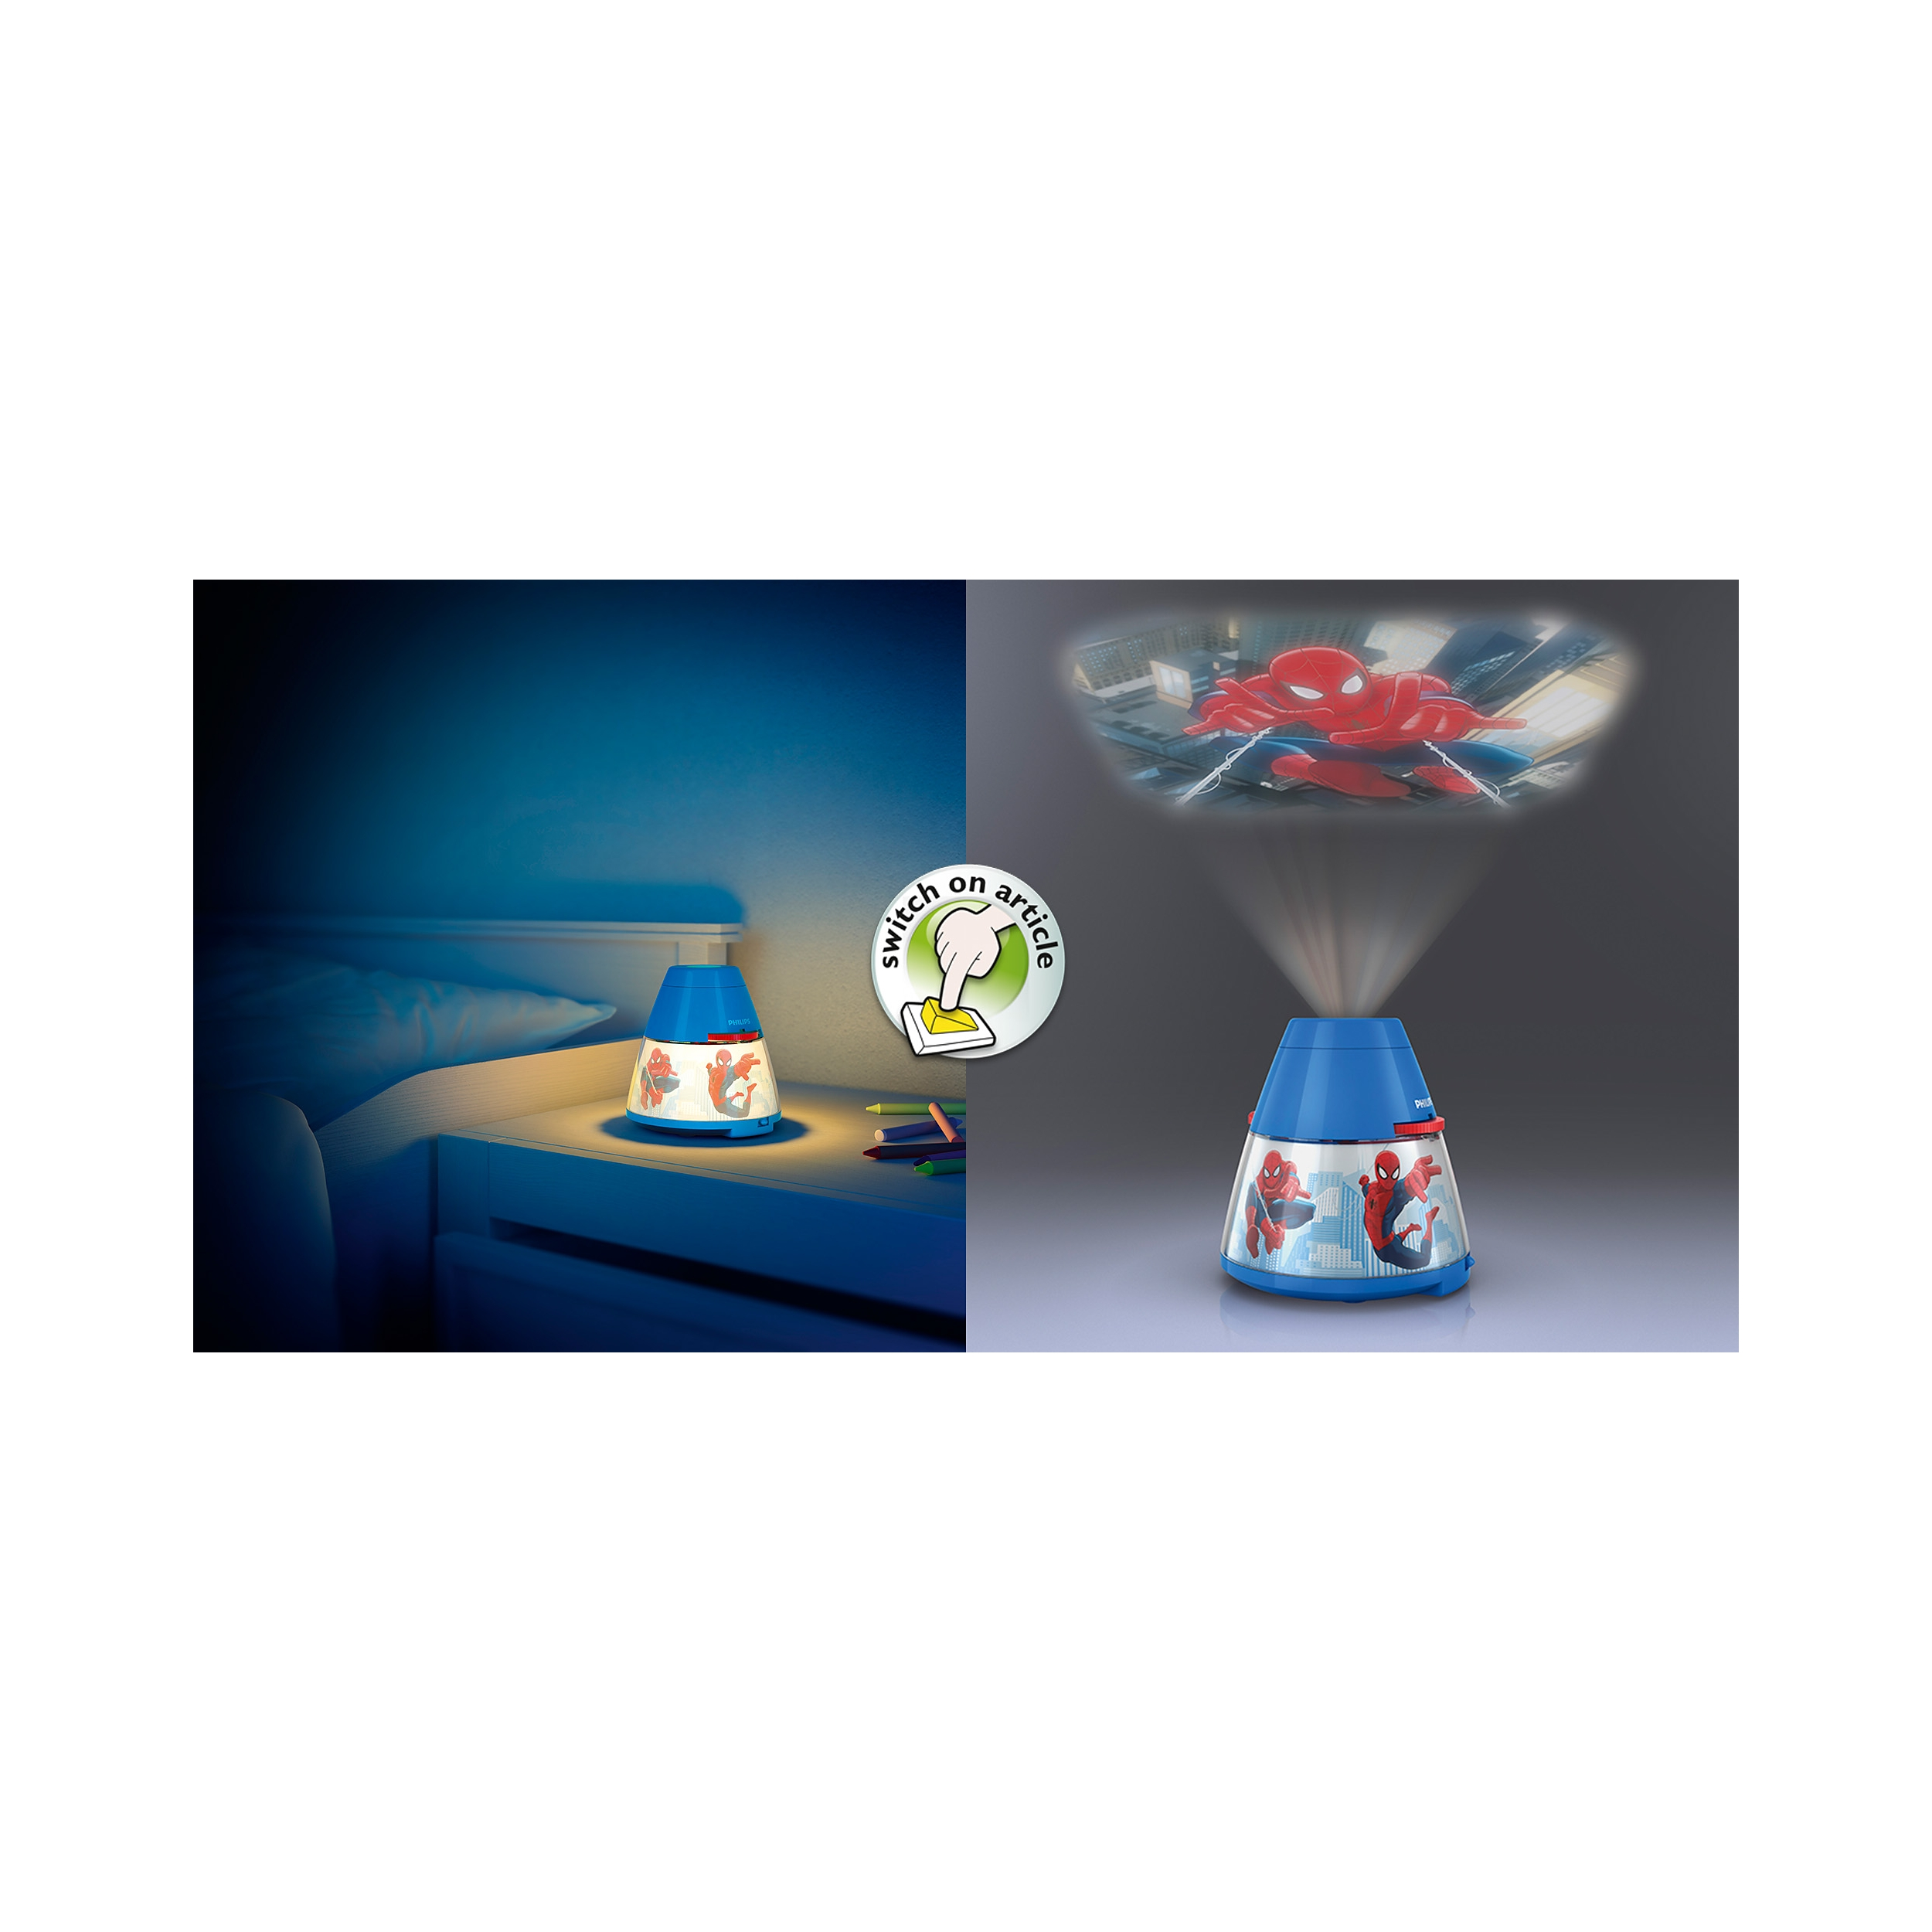 philips led lampe kinderzimmer disney projektor spiderman licht 717694016 ebay. Black Bedroom Furniture Sets. Home Design Ideas